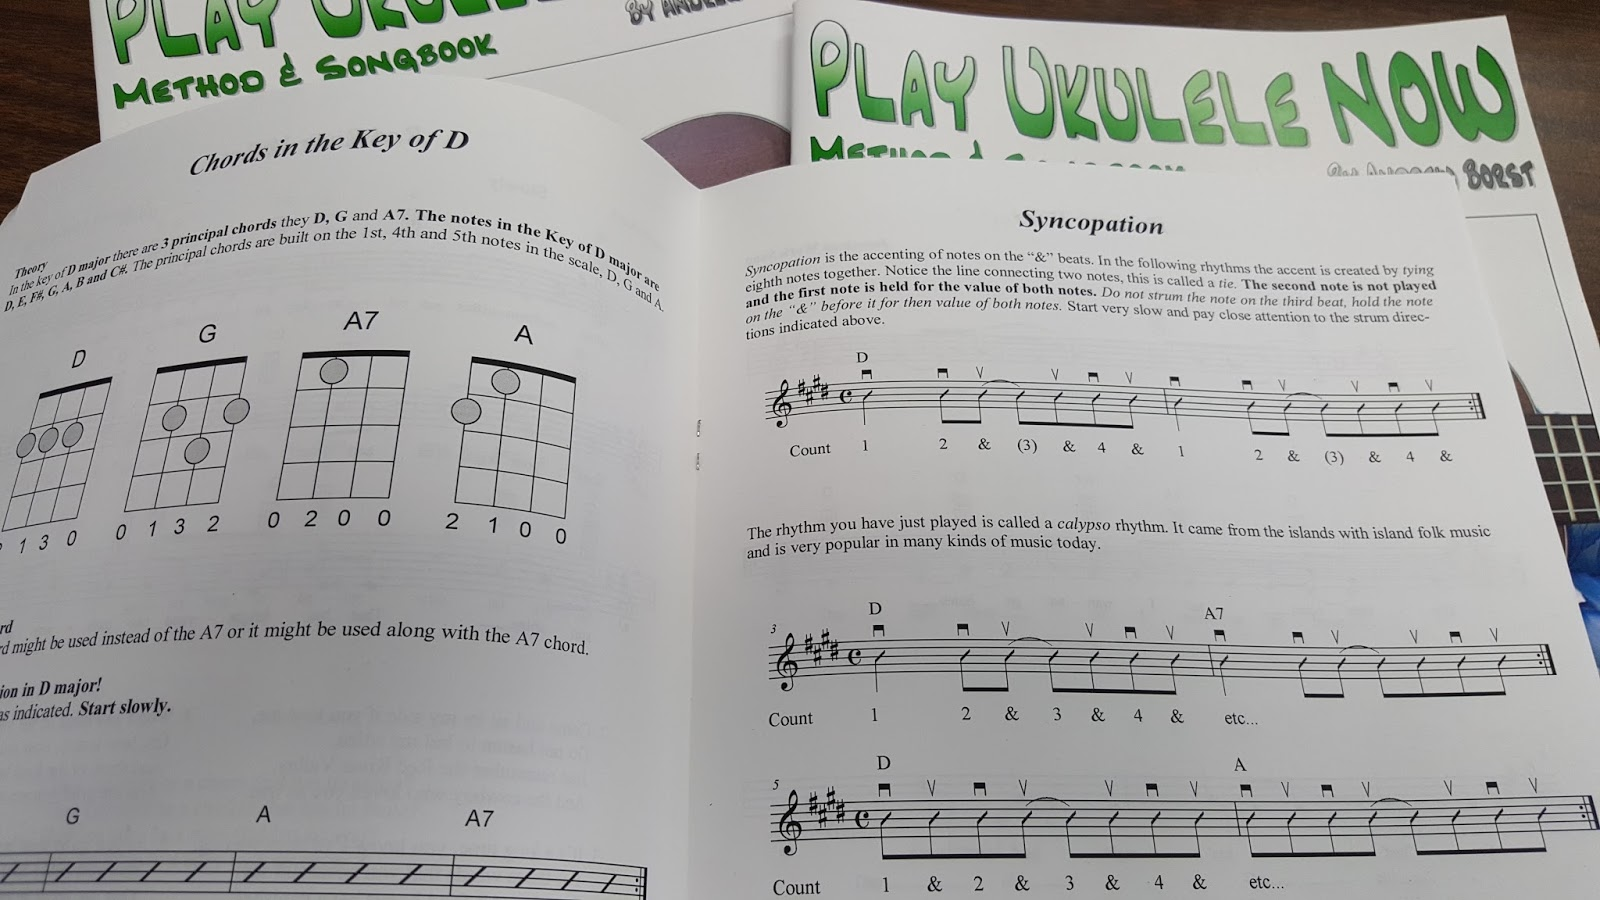 Play ukulele now get your play ukulele now books you will easily learn how and why chords work together you will learn lots of great rhythms and understand how to create your own and you will have lots hexwebz Image collections